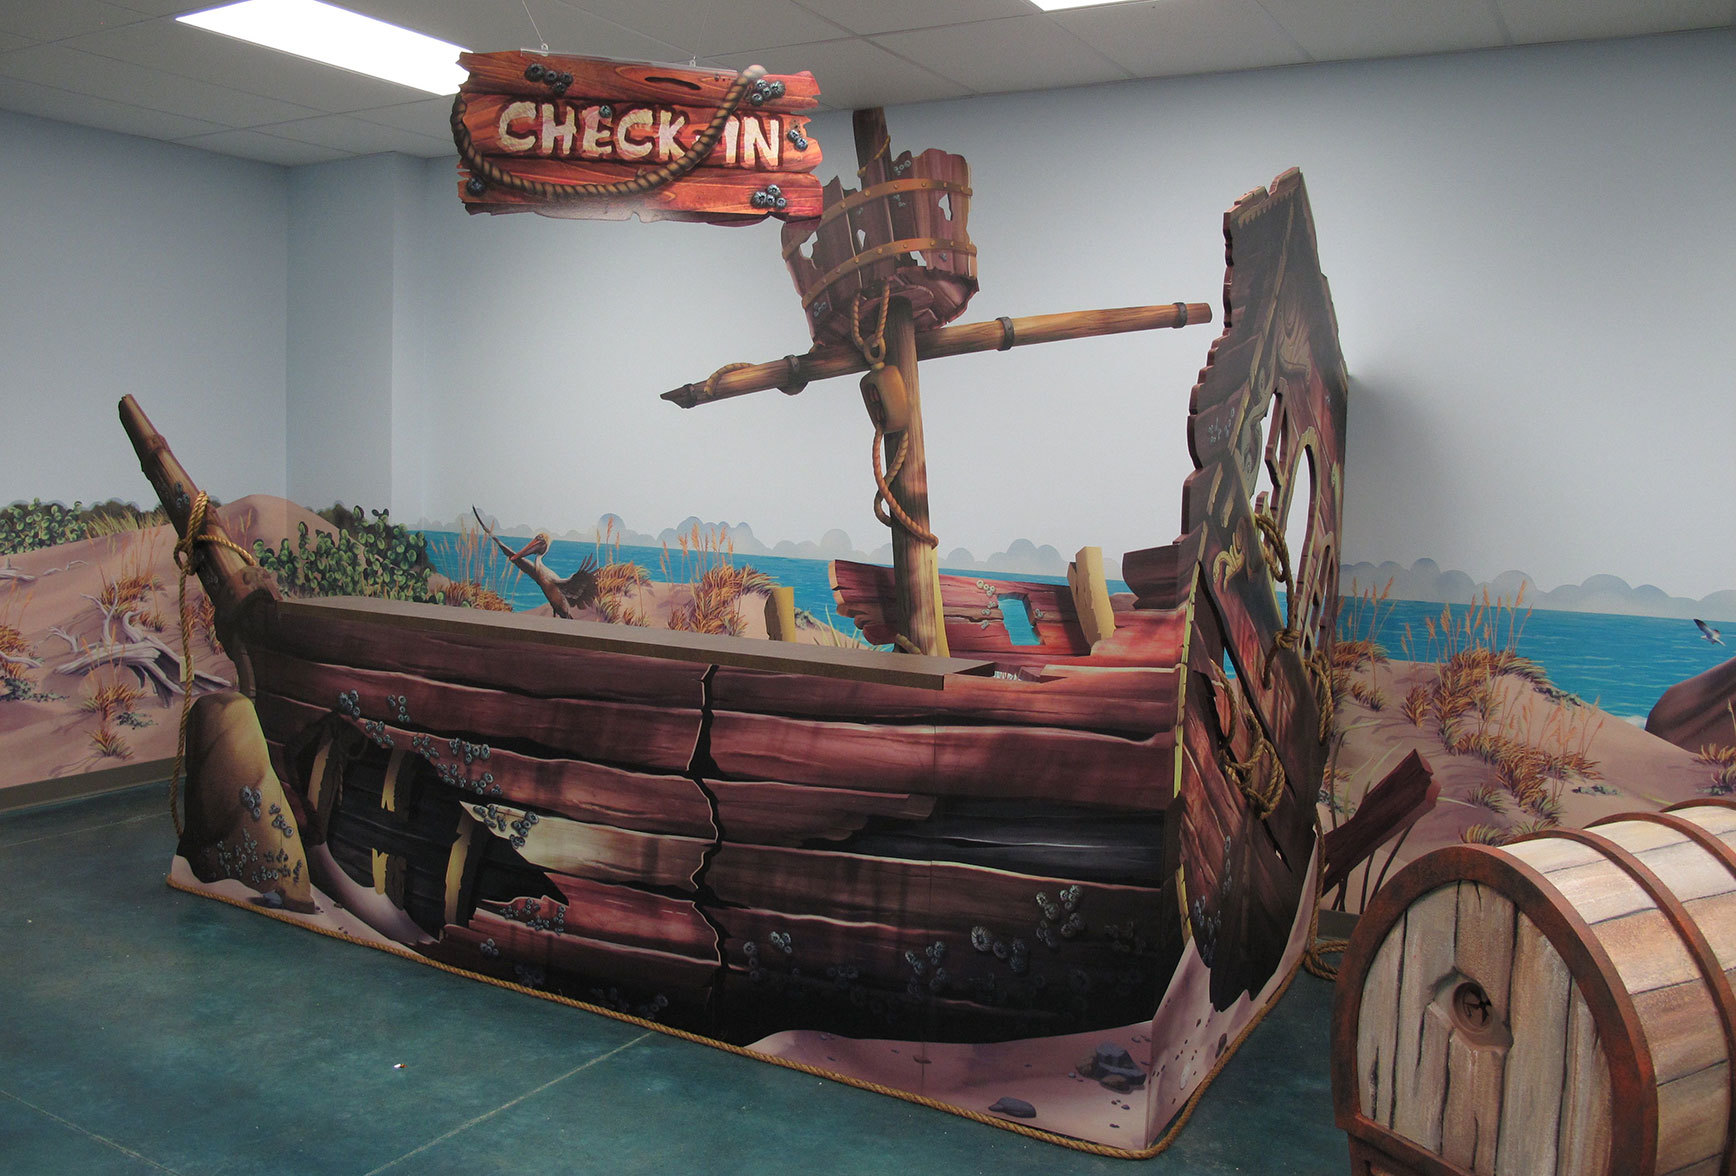 Beach & Wrecked Ship Themed Check In Desk